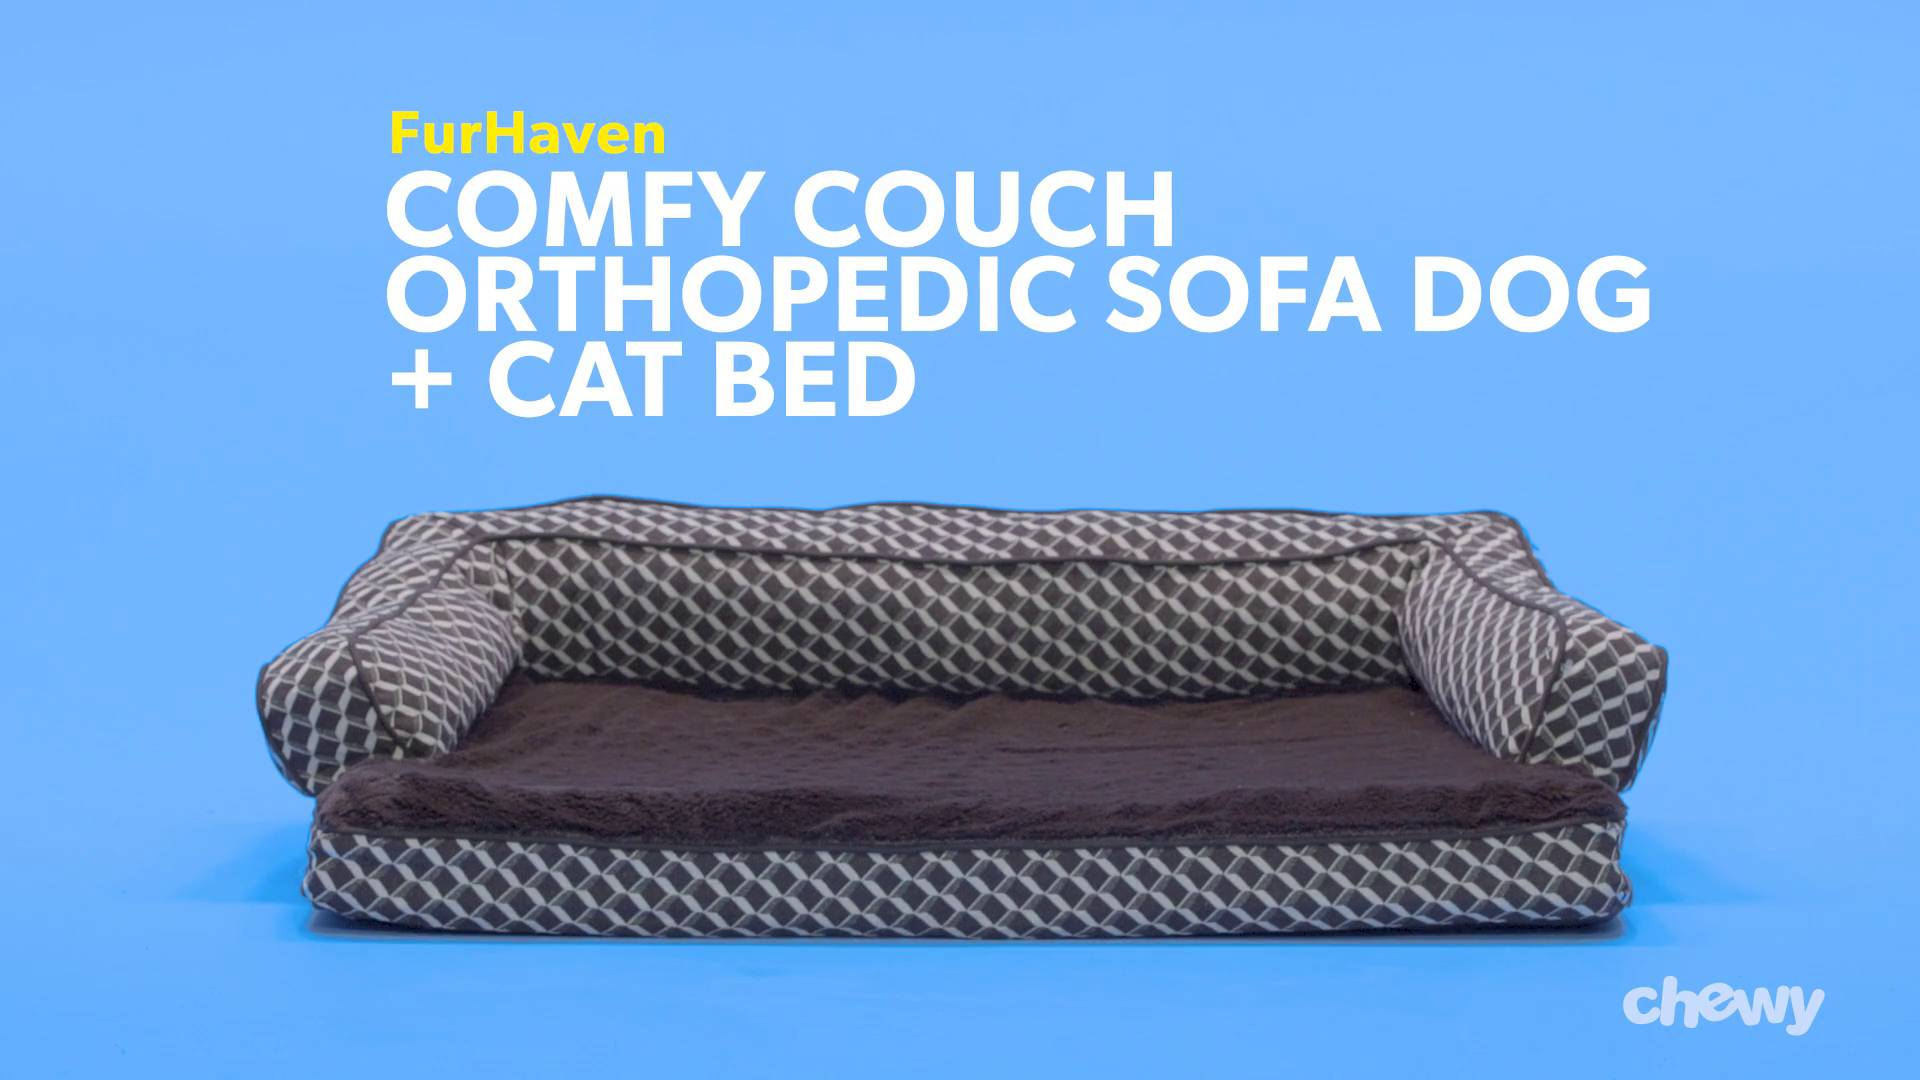 FurHaven Comfy Couch Orthopedic Sofa Dog U0026 Cat Bed, Diamond Brown, Large    Chewy.com